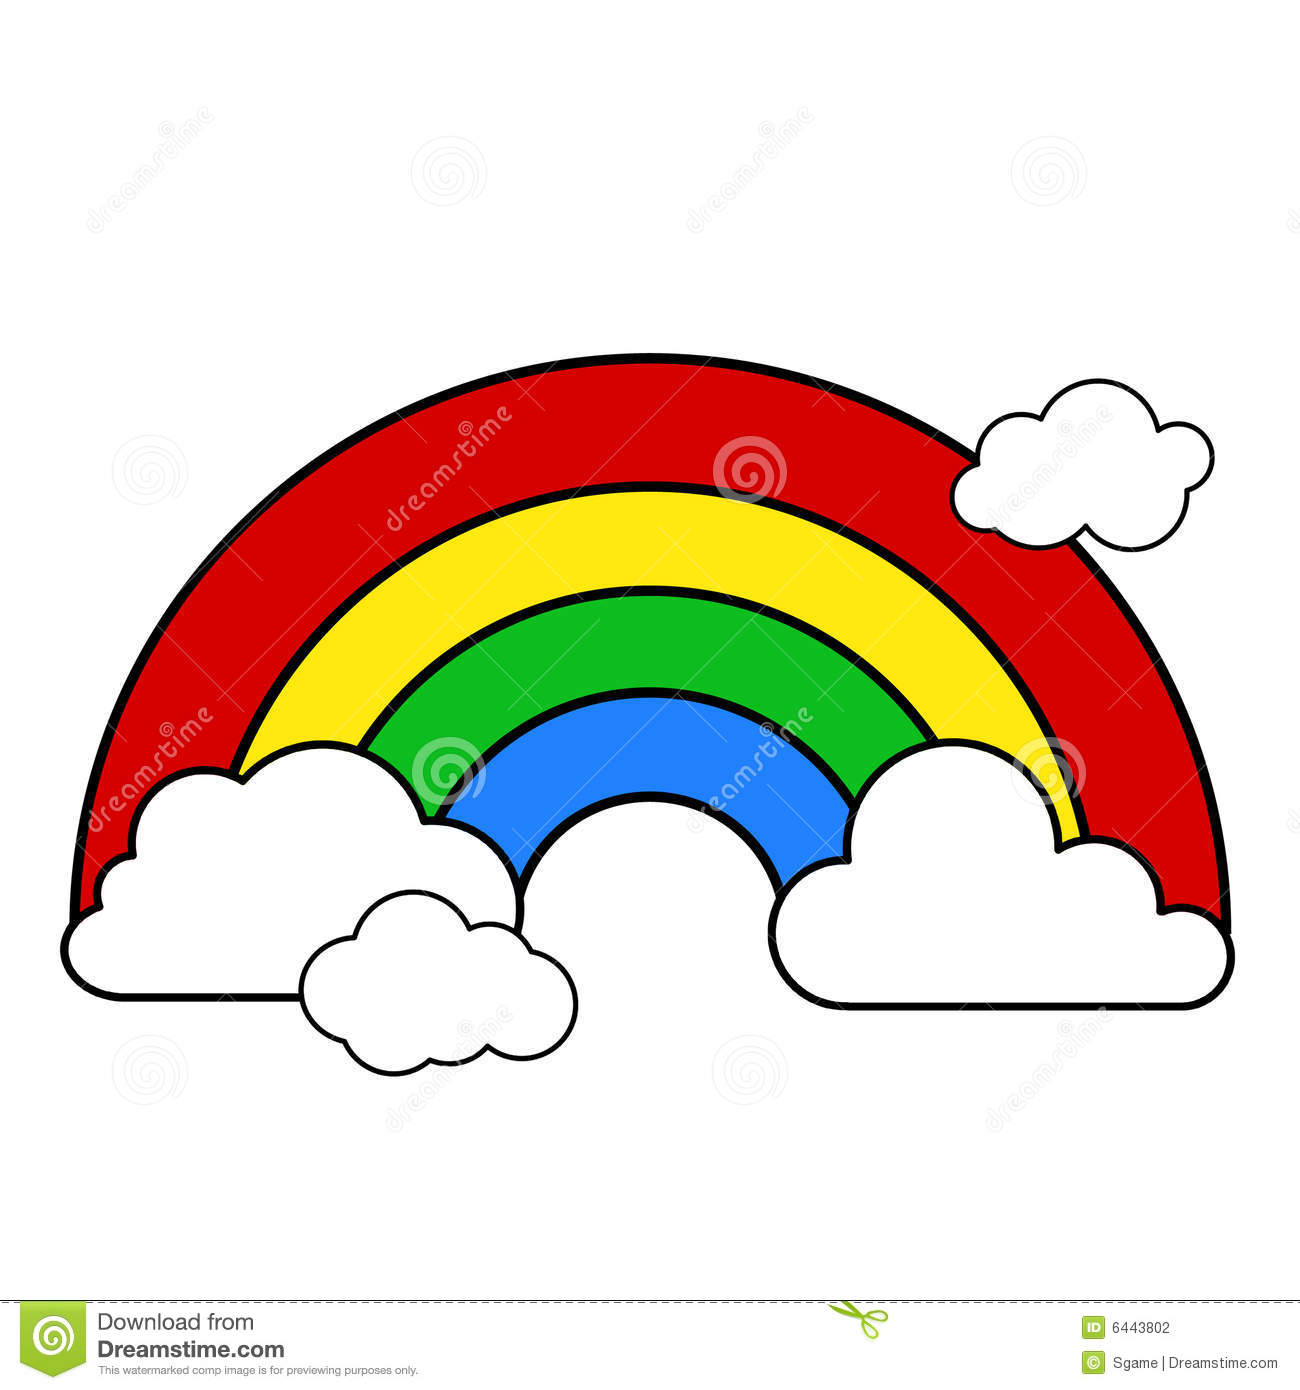 rainbow clip art clipart panda free clipart images rh clipartpanda com clip art rainbow bridge clipart rainbow black and white